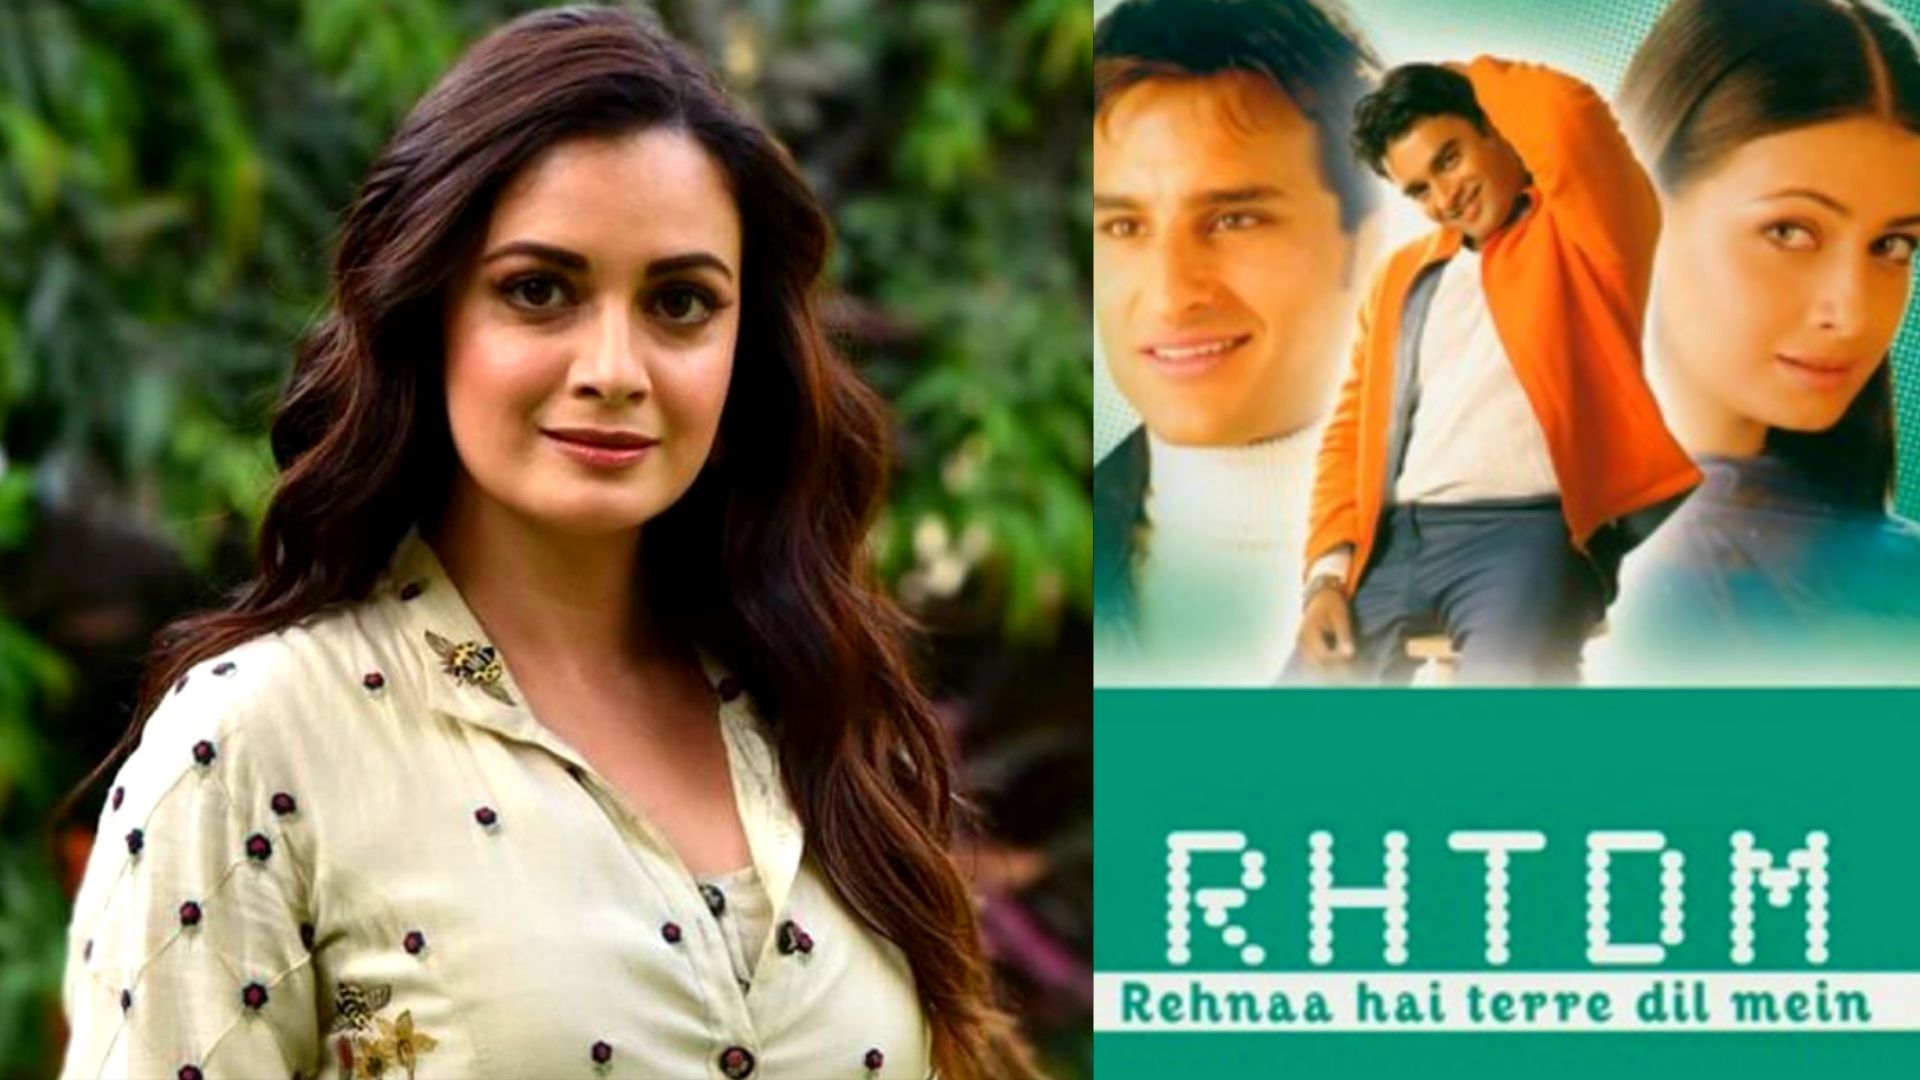 Rehna Hai Tere Dil Mein Clocks 20 Years: Dia Mirza Celebrates Two Decades In The Film Industry With An Emotional Note